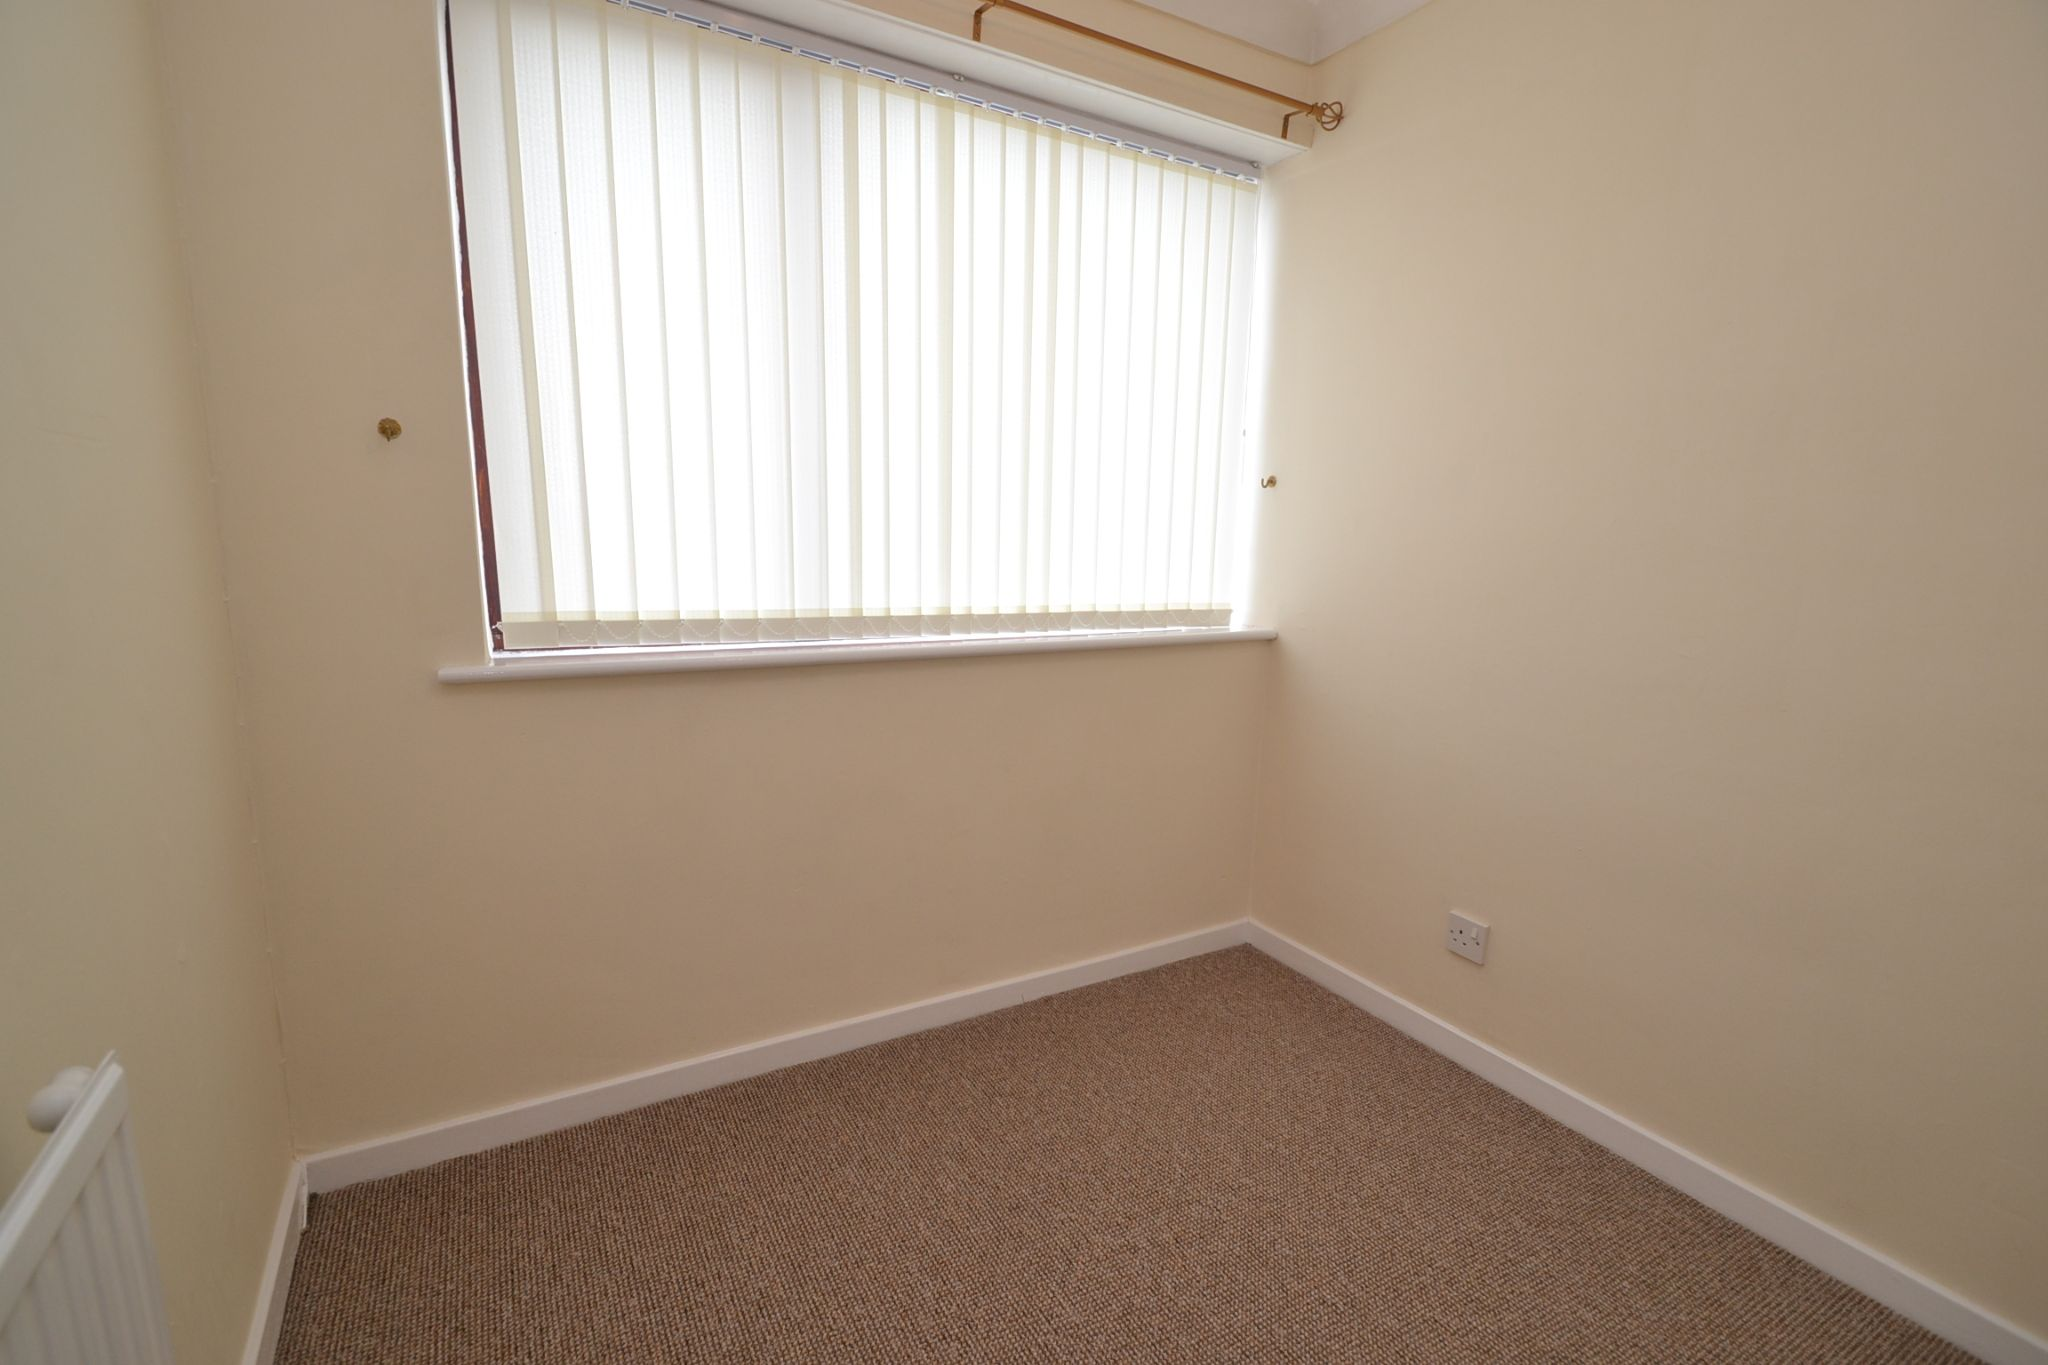 2 Bedroom Ground Floor Flat/apartment For Sale - Photograph 6